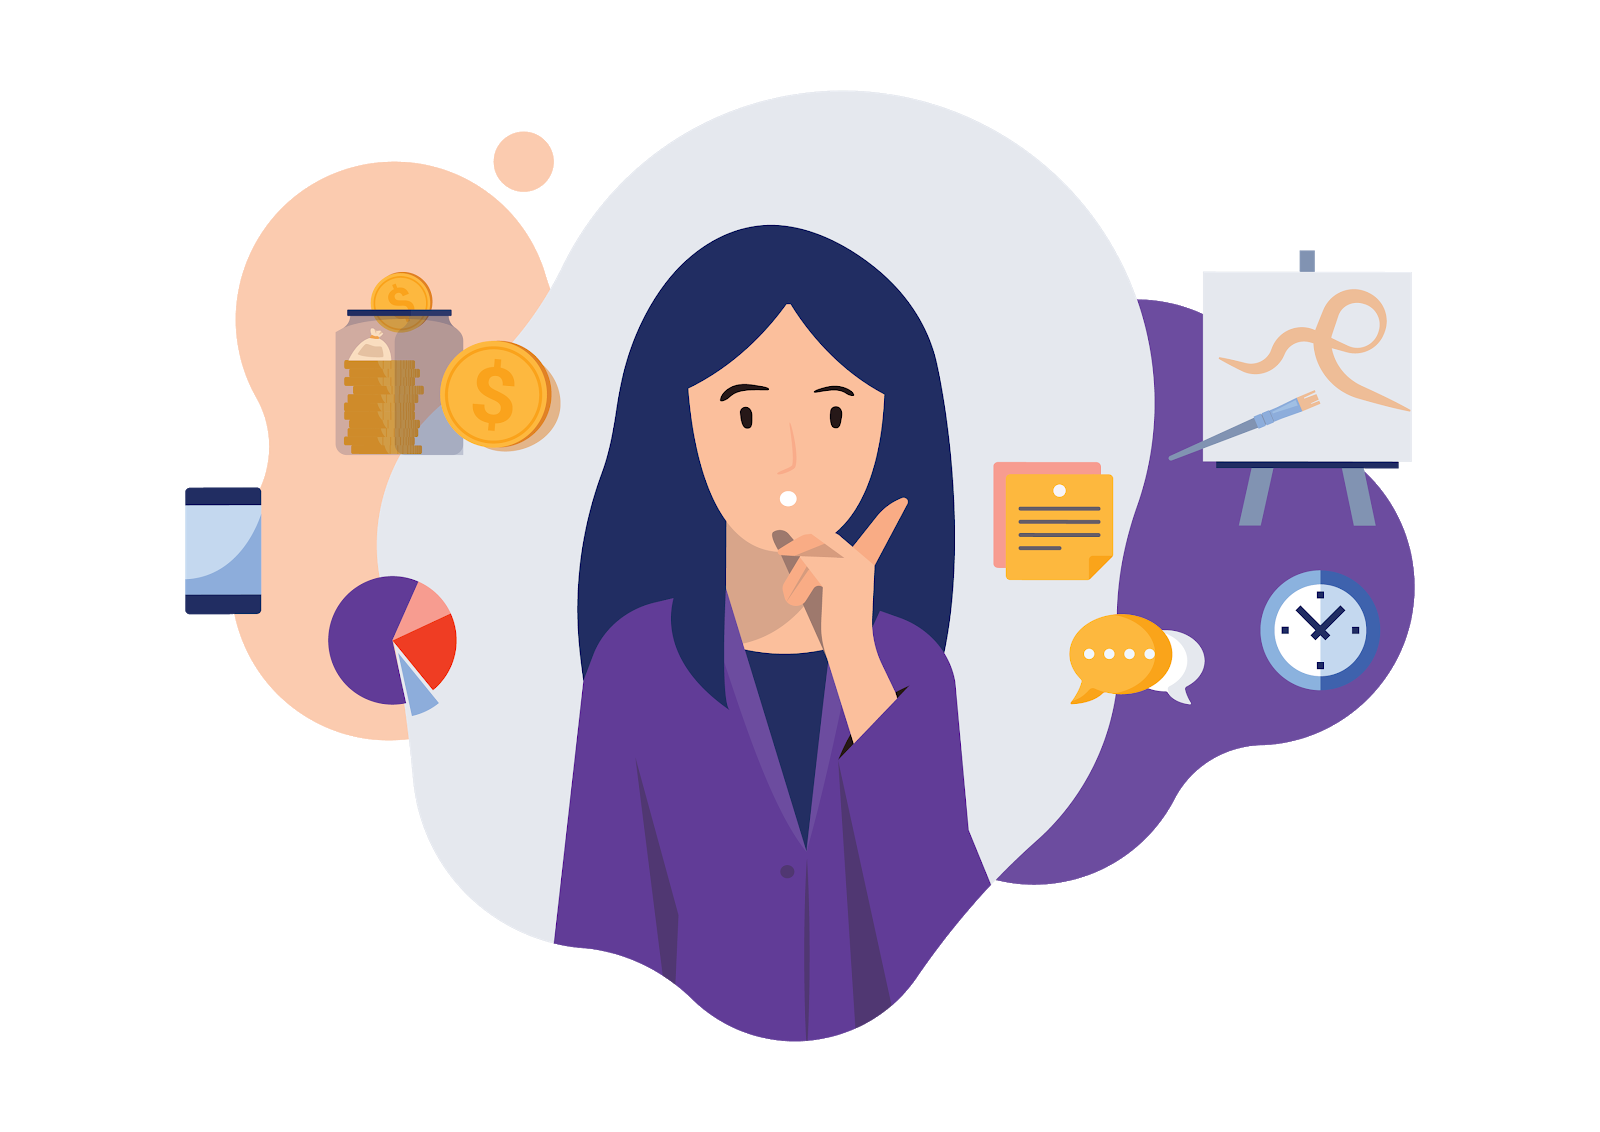 Illustration of digital marketer with multiple interests and professional commitments